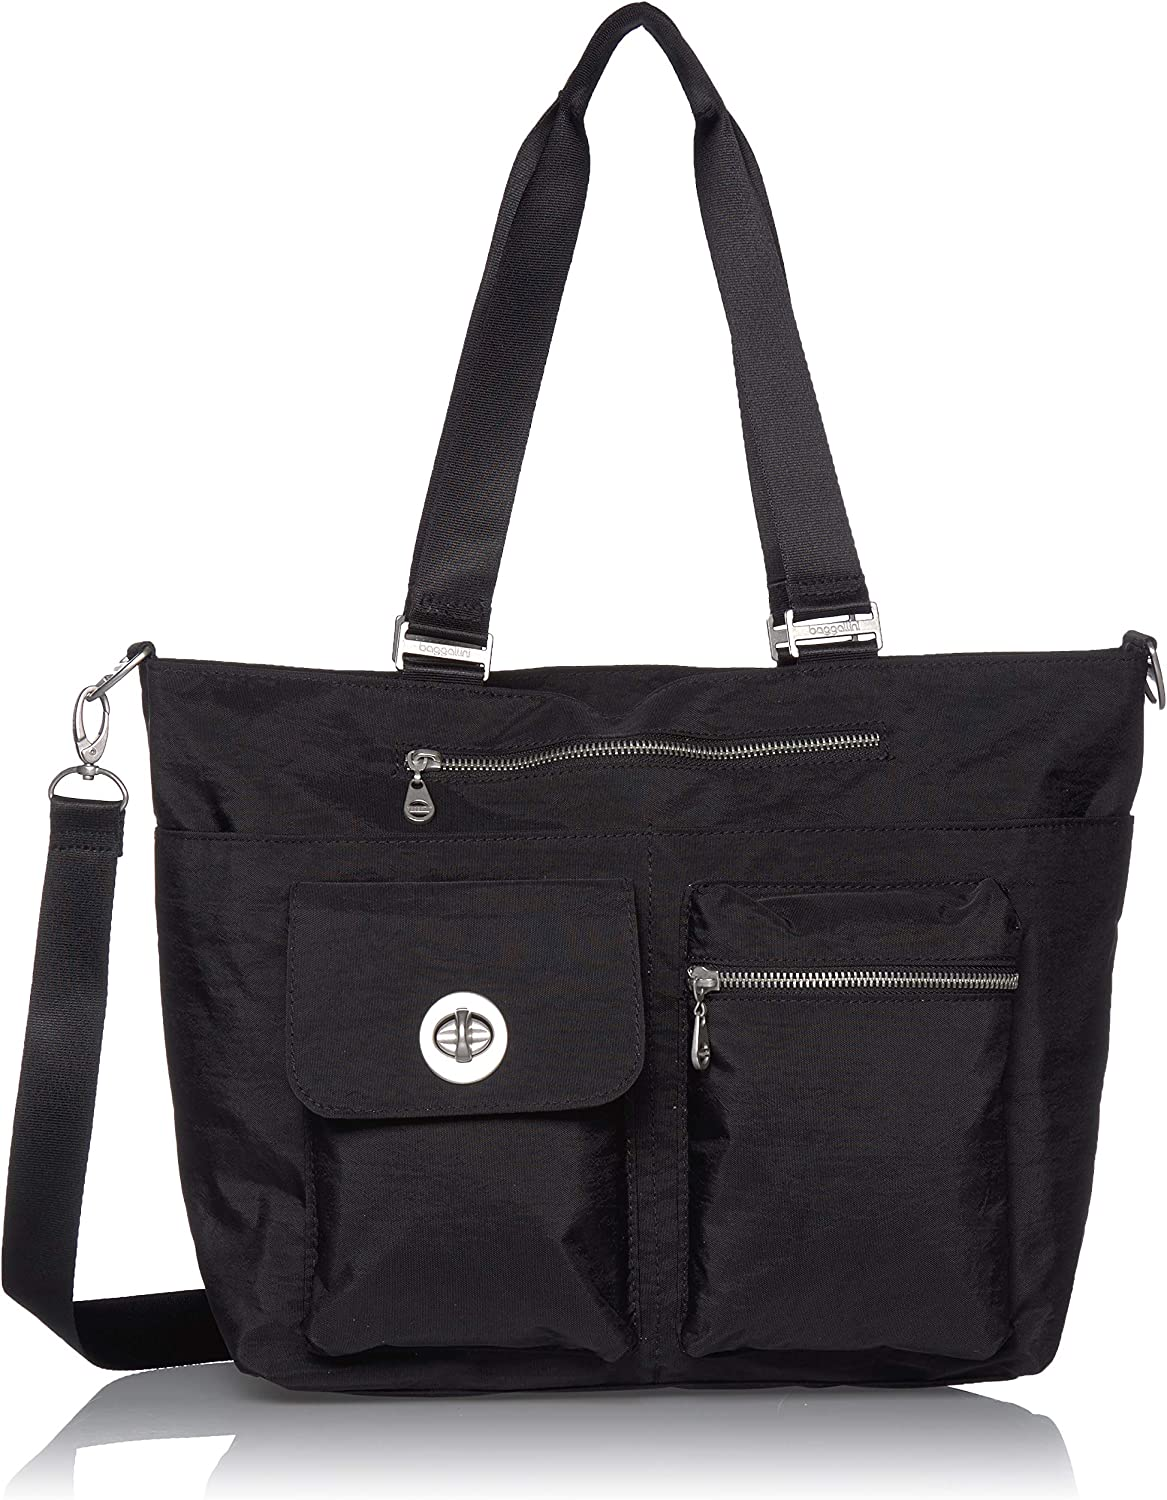 Image of Baggallini Hong Kong Laptop Tote Briefcases